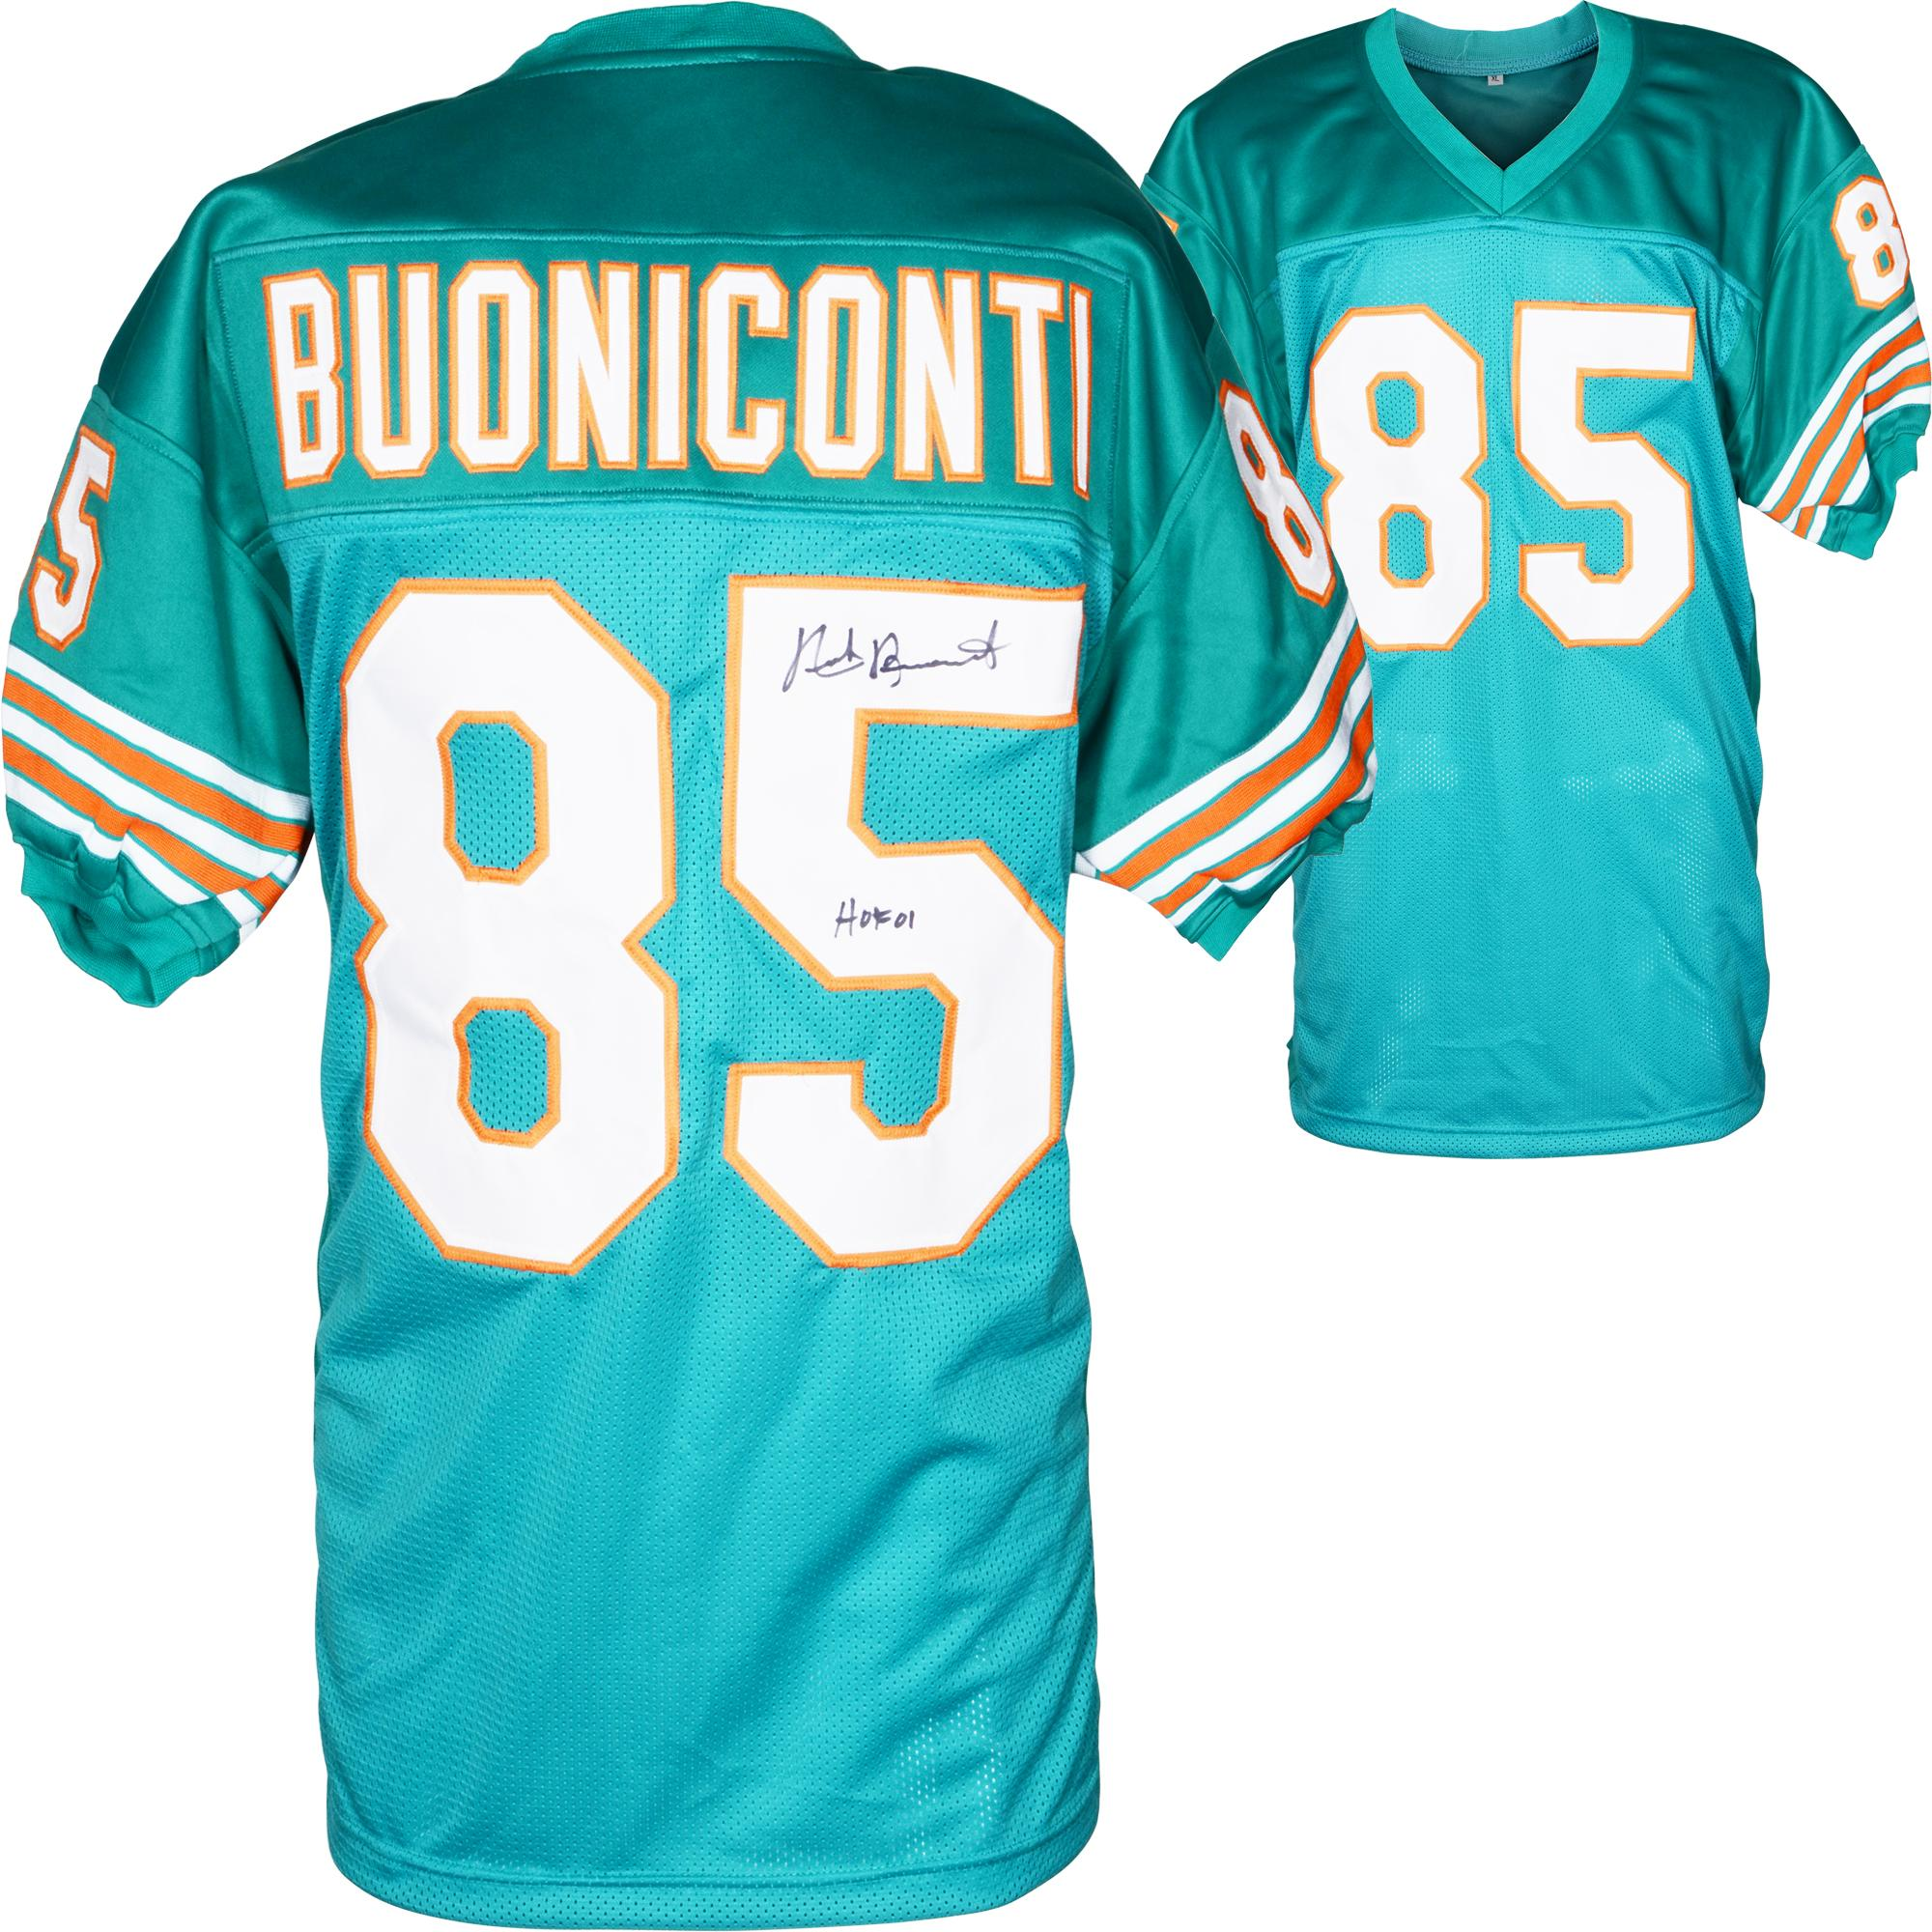 Nick Buoniconti Miami Dolphins Autographed Jersey - HOF 01